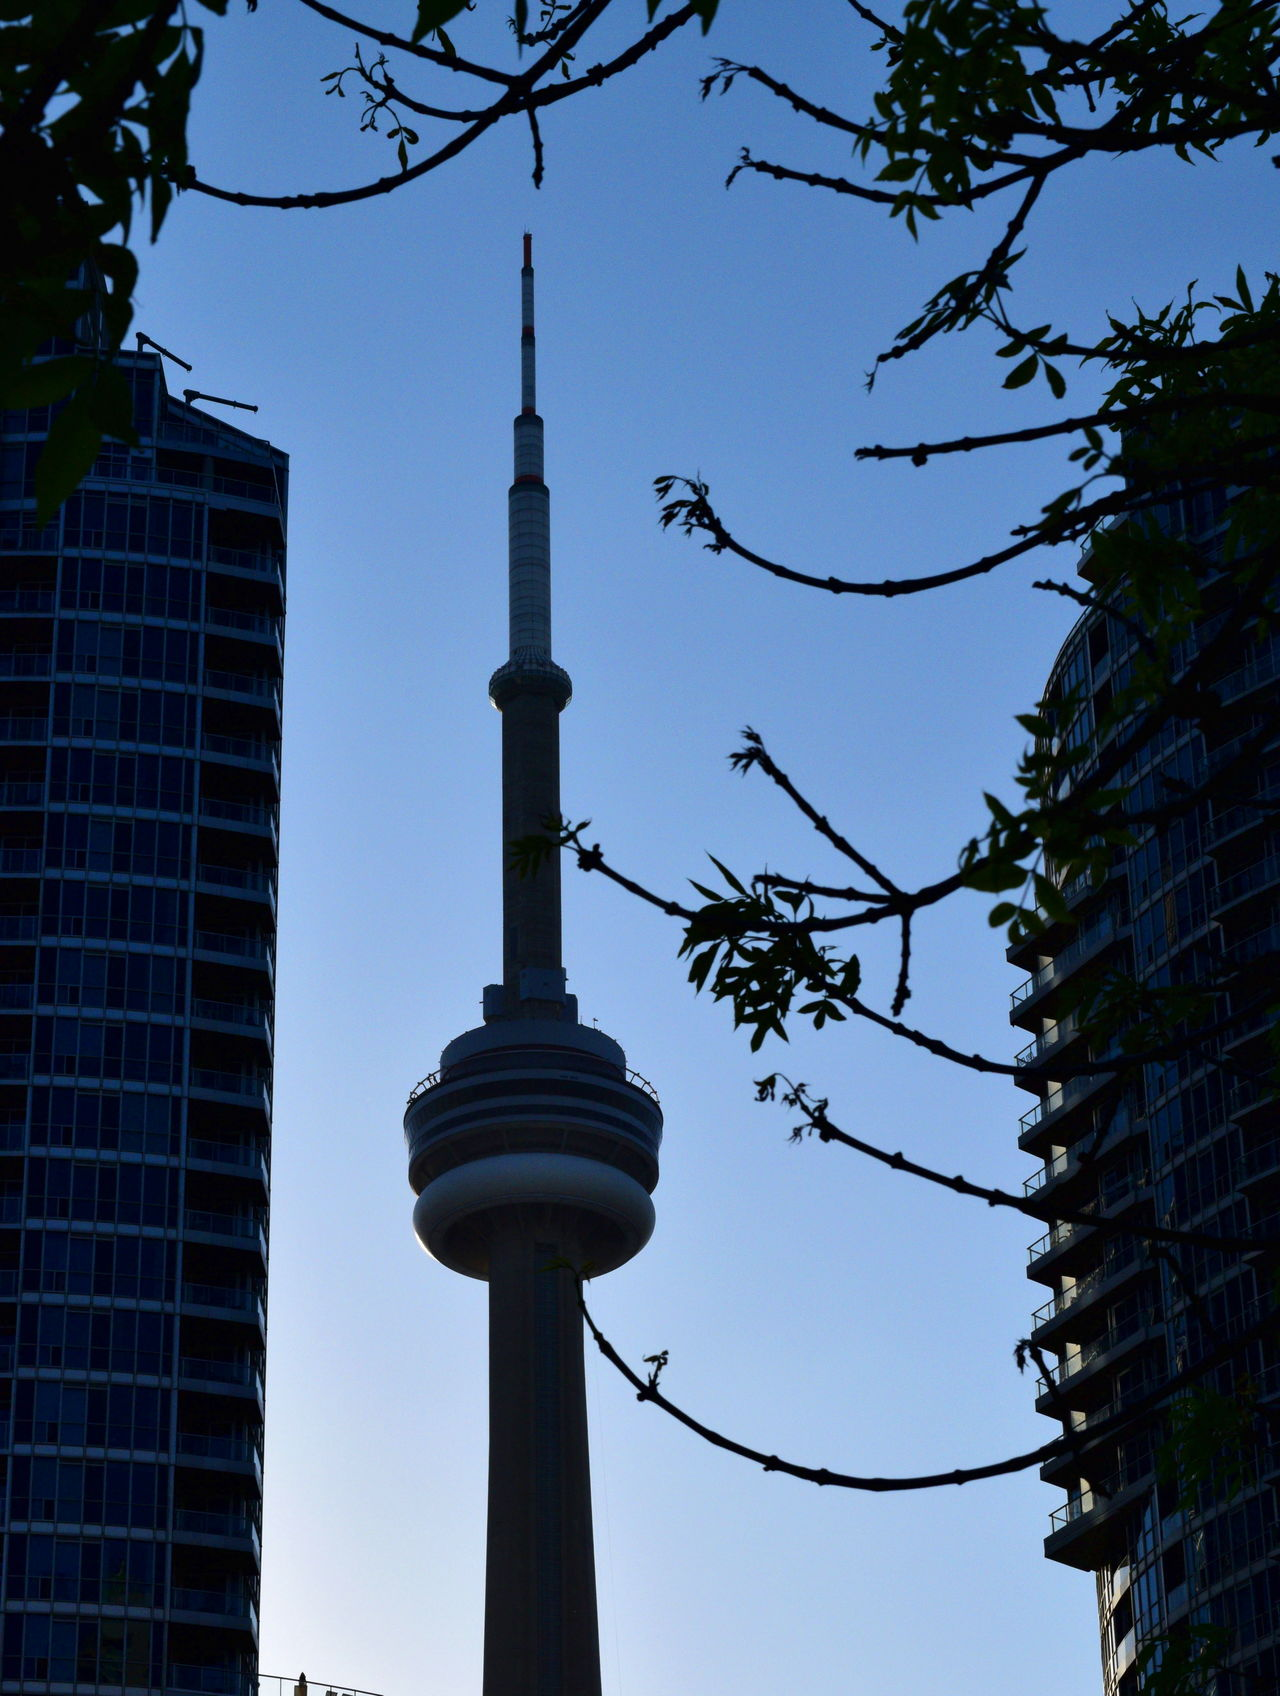 Architecture Blue Branch Building Exterior Built Structure Capital Cities  City Clear Sky CN Tower Day Growth High Section La Tour CN Low Angle View Modern Office Building Silhouette Sky Skyscraper Spire  tall Battle Of The Cities - high Tourism Tower Travel Destinations